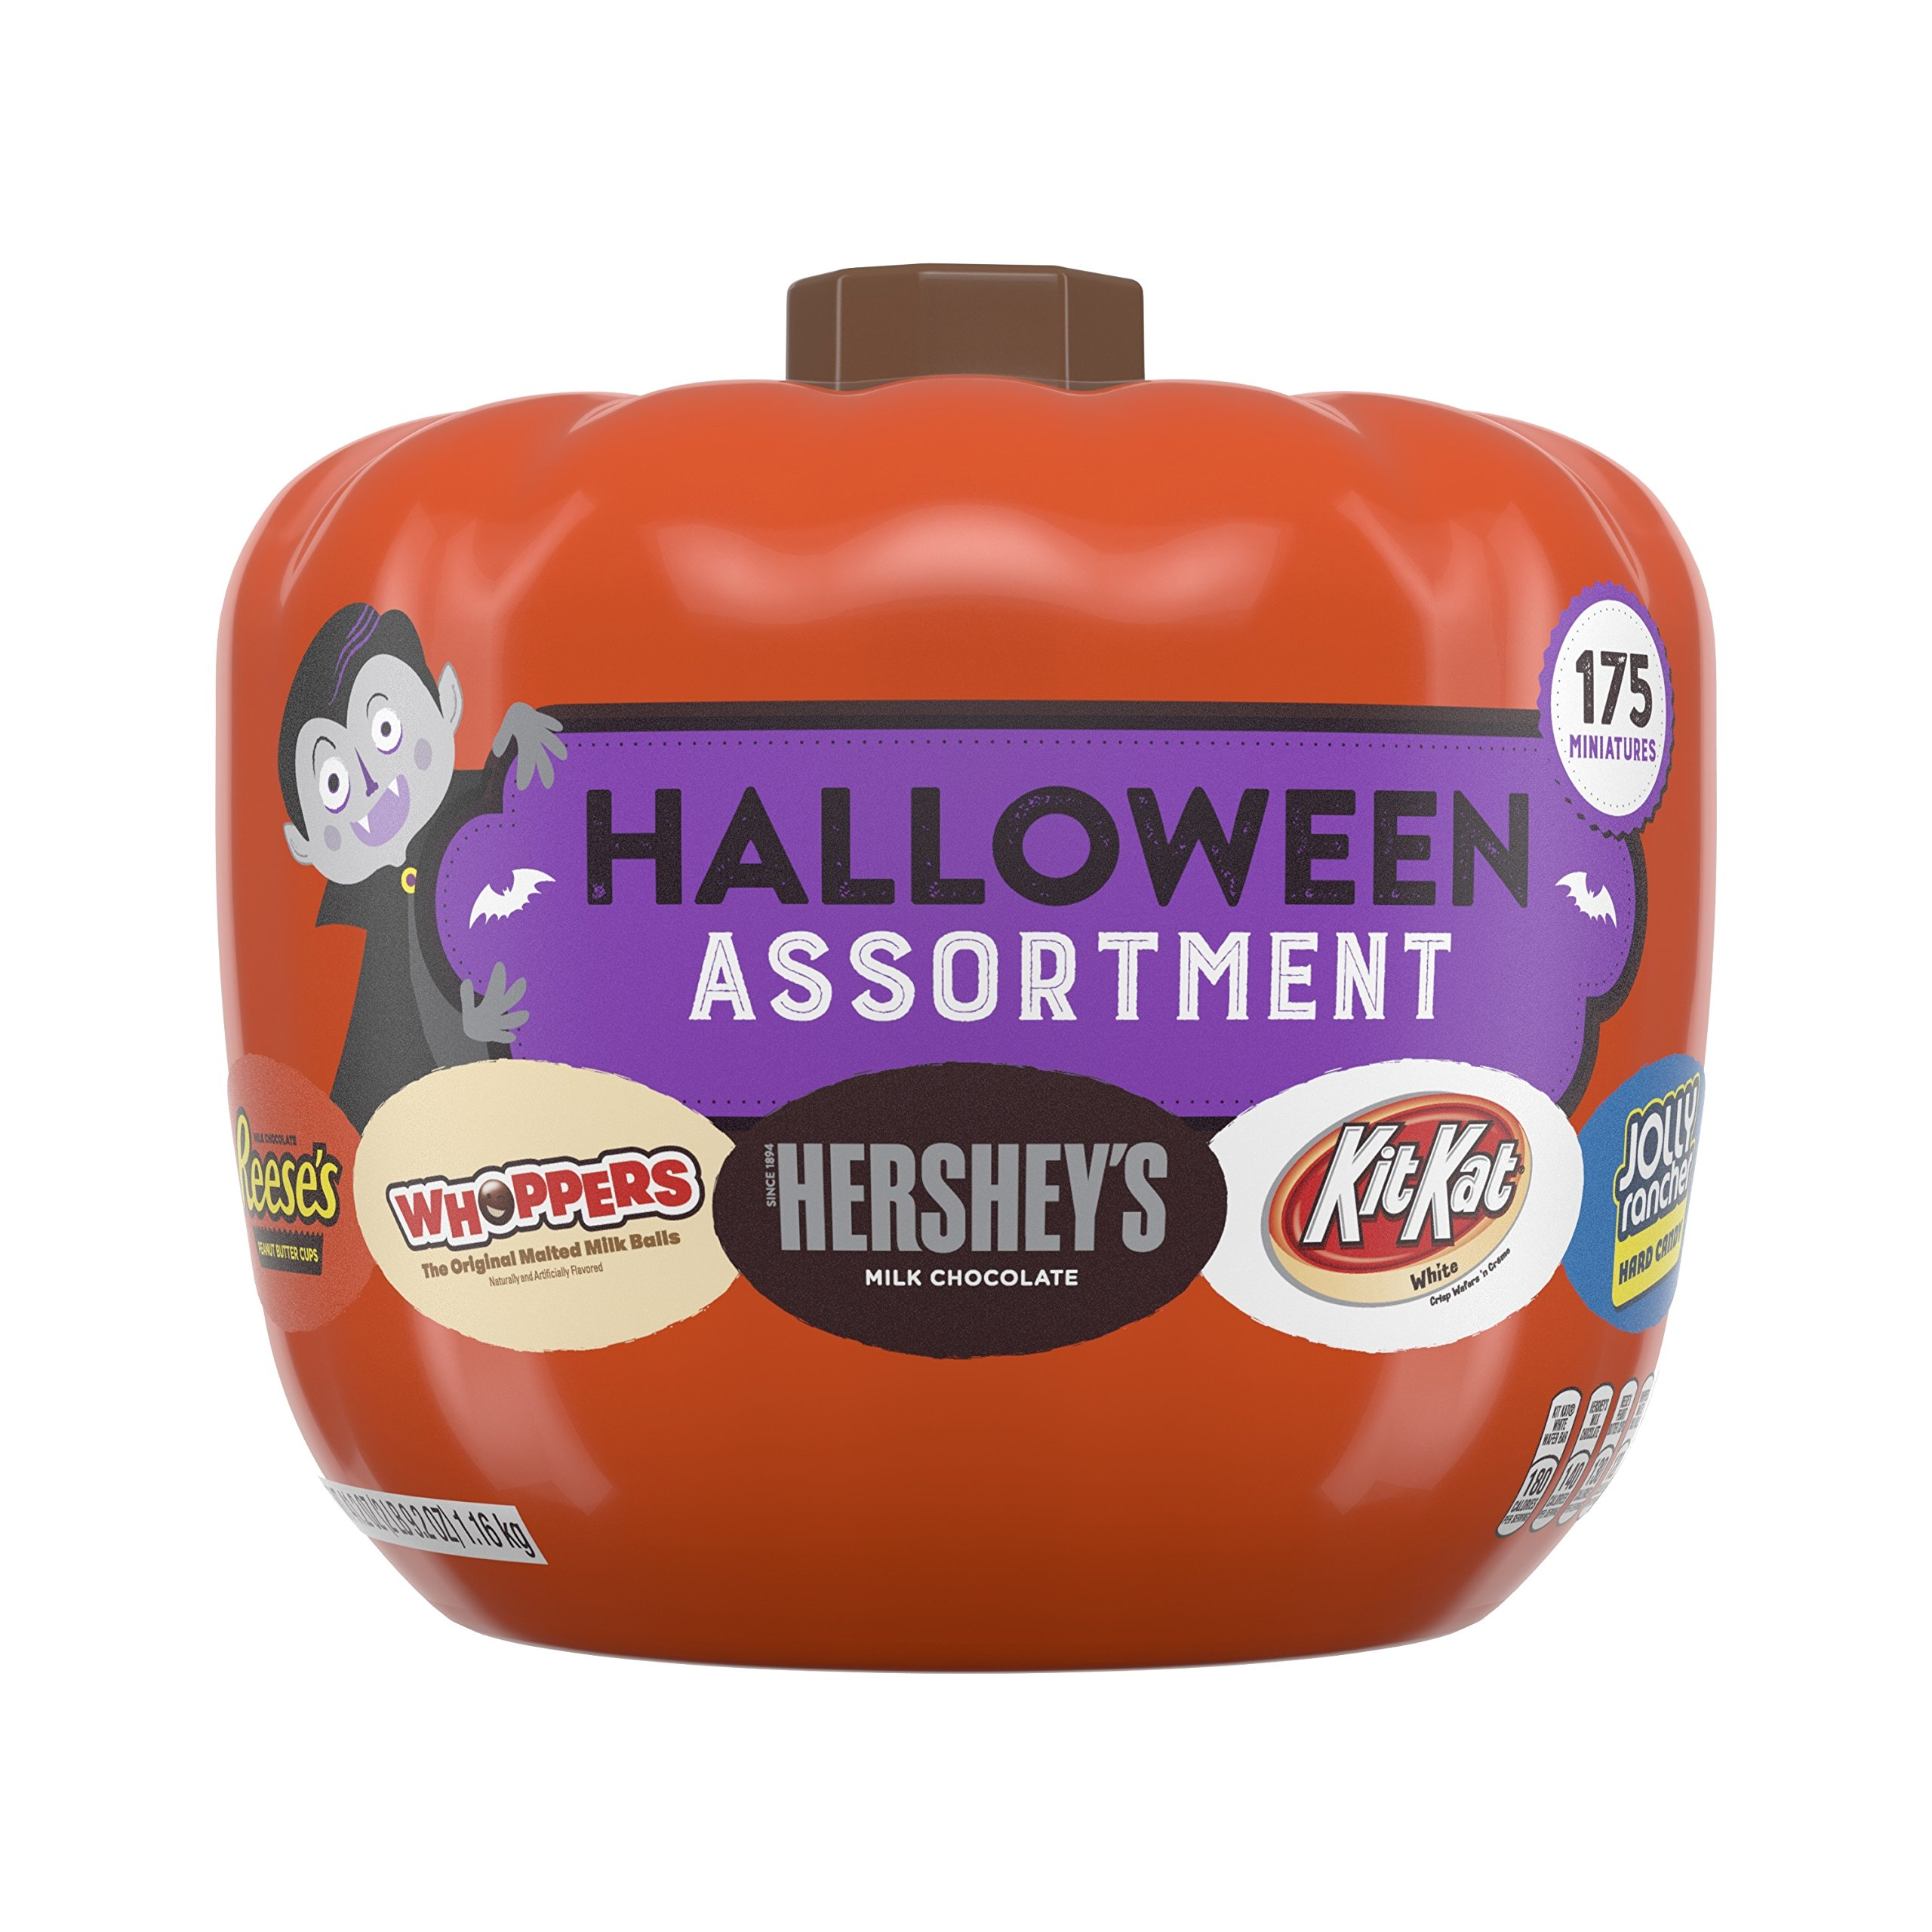 HERSHEY'S Snack Size Halloween Chocolate Candy Assortment in Pumpkin Bowl, 175 Pieces, 41.2 Ounces by HERSHEY'S